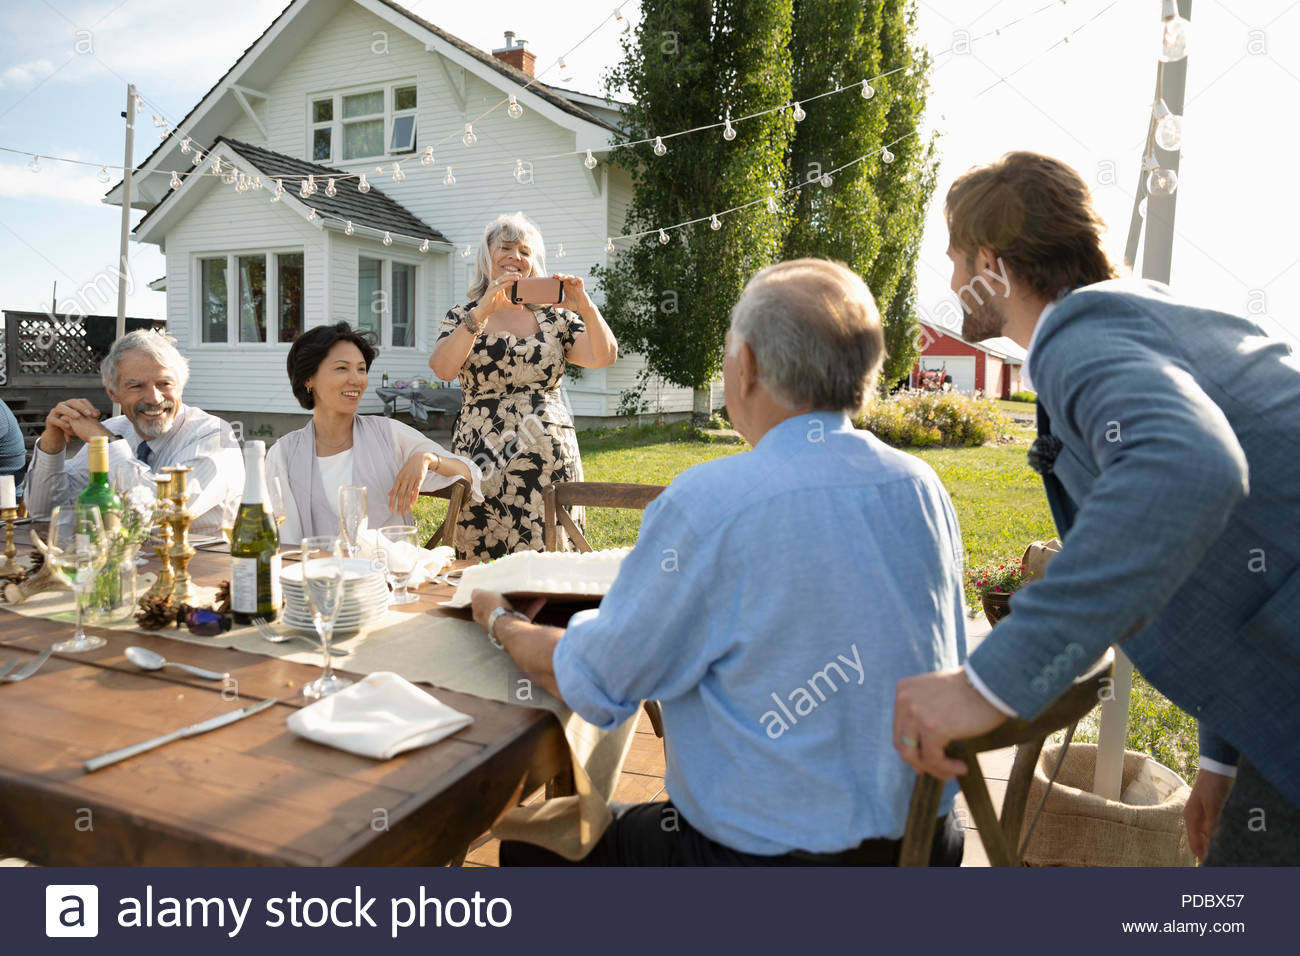 Woman photographing father and son at retirement party table - Stock Image